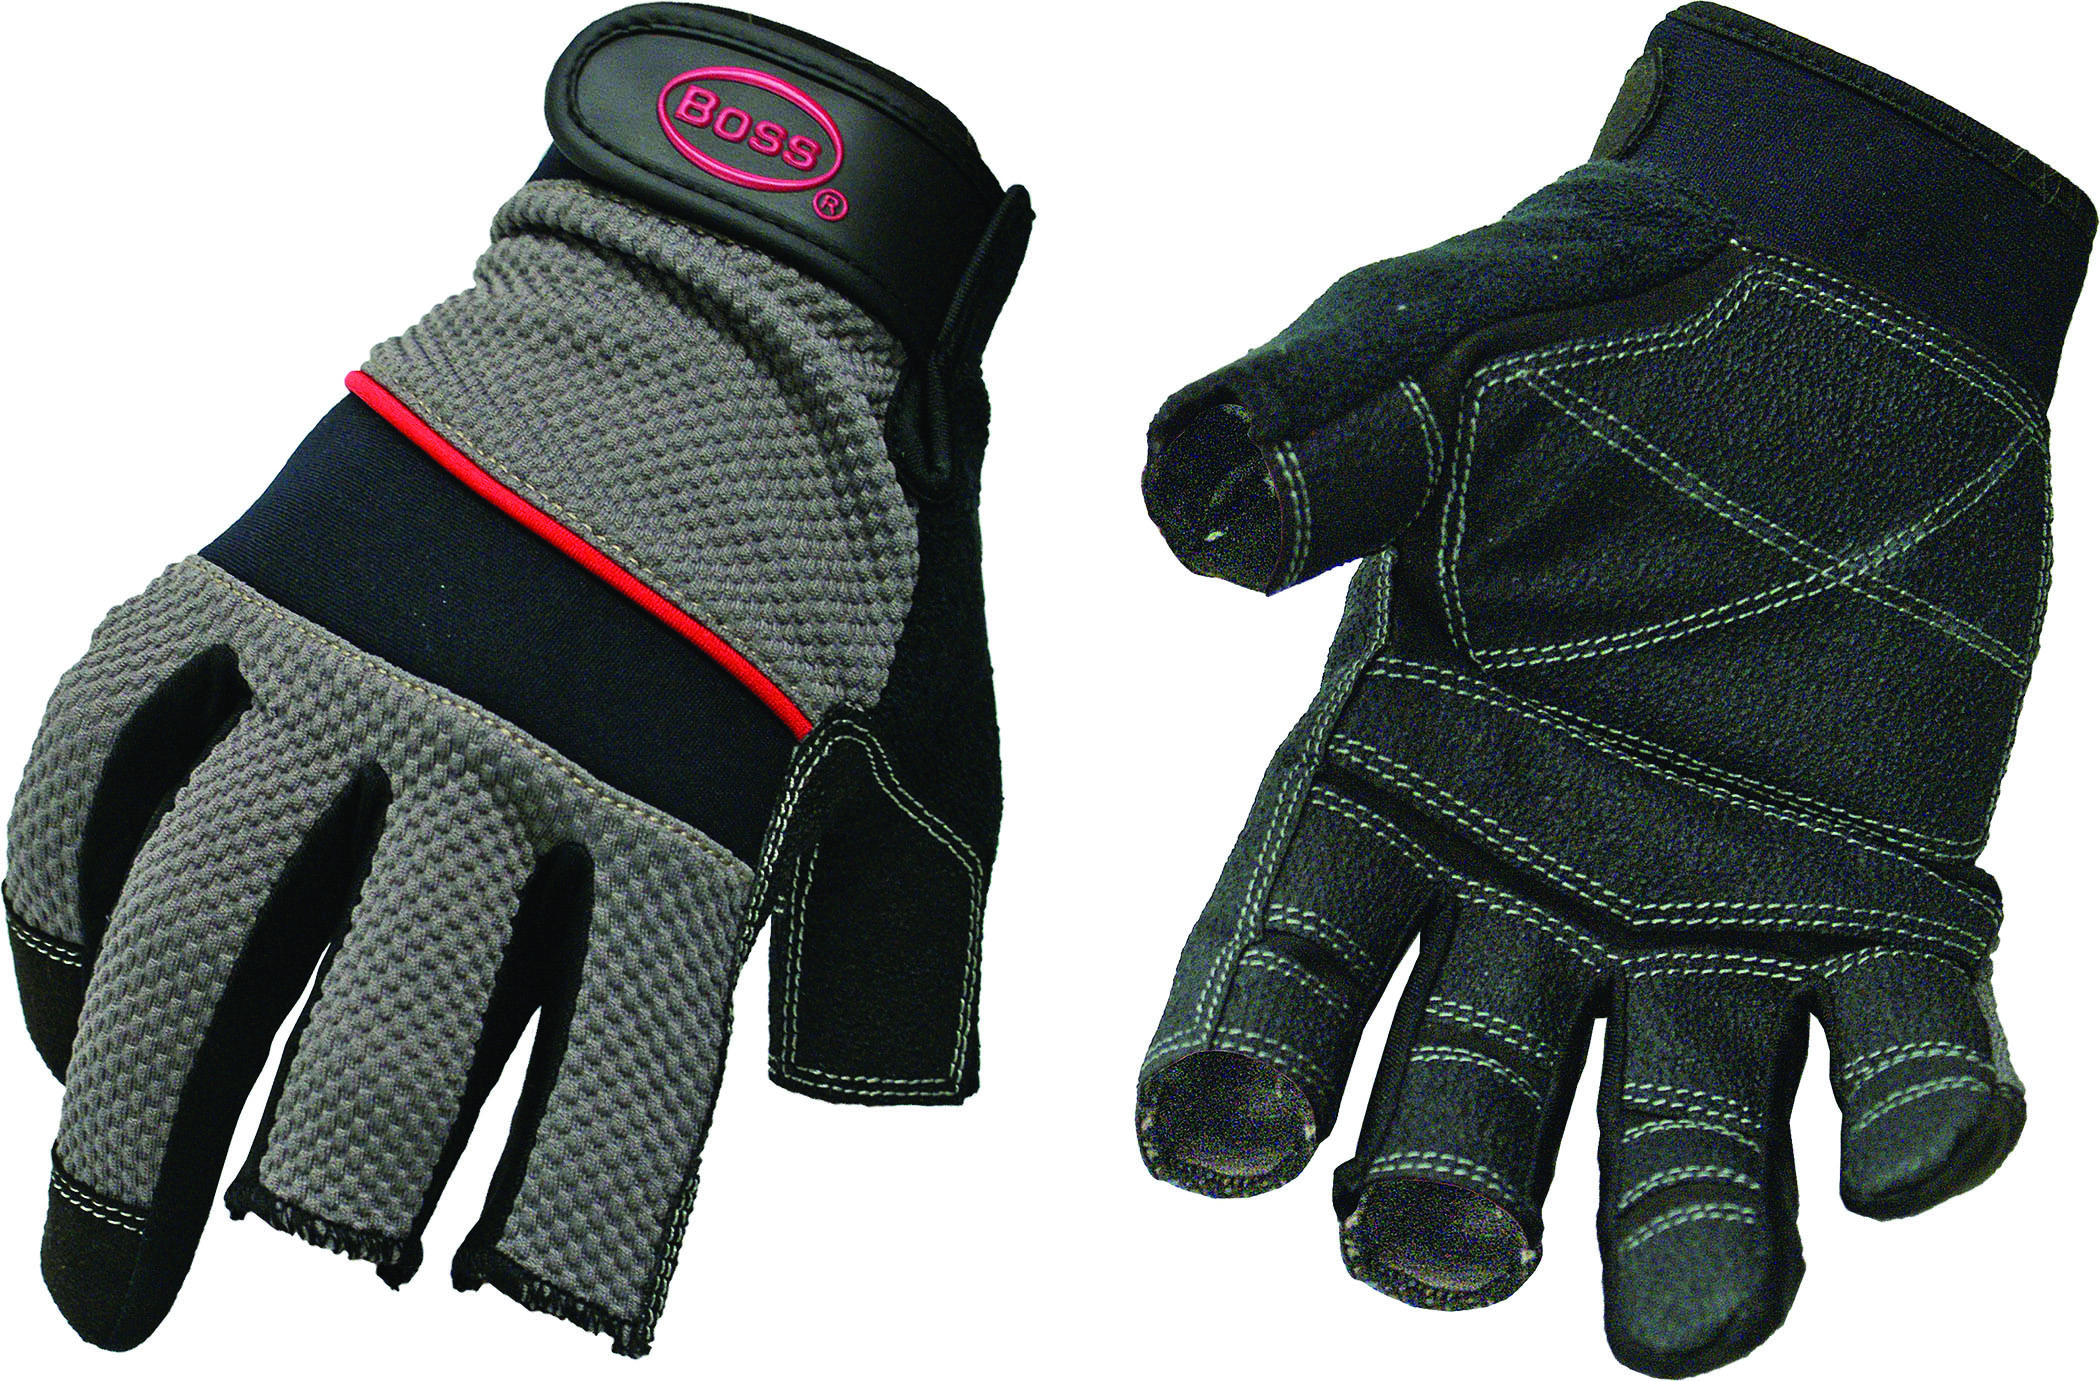 BOSS Carpenter Utility Glove Pvc Palm And Finger